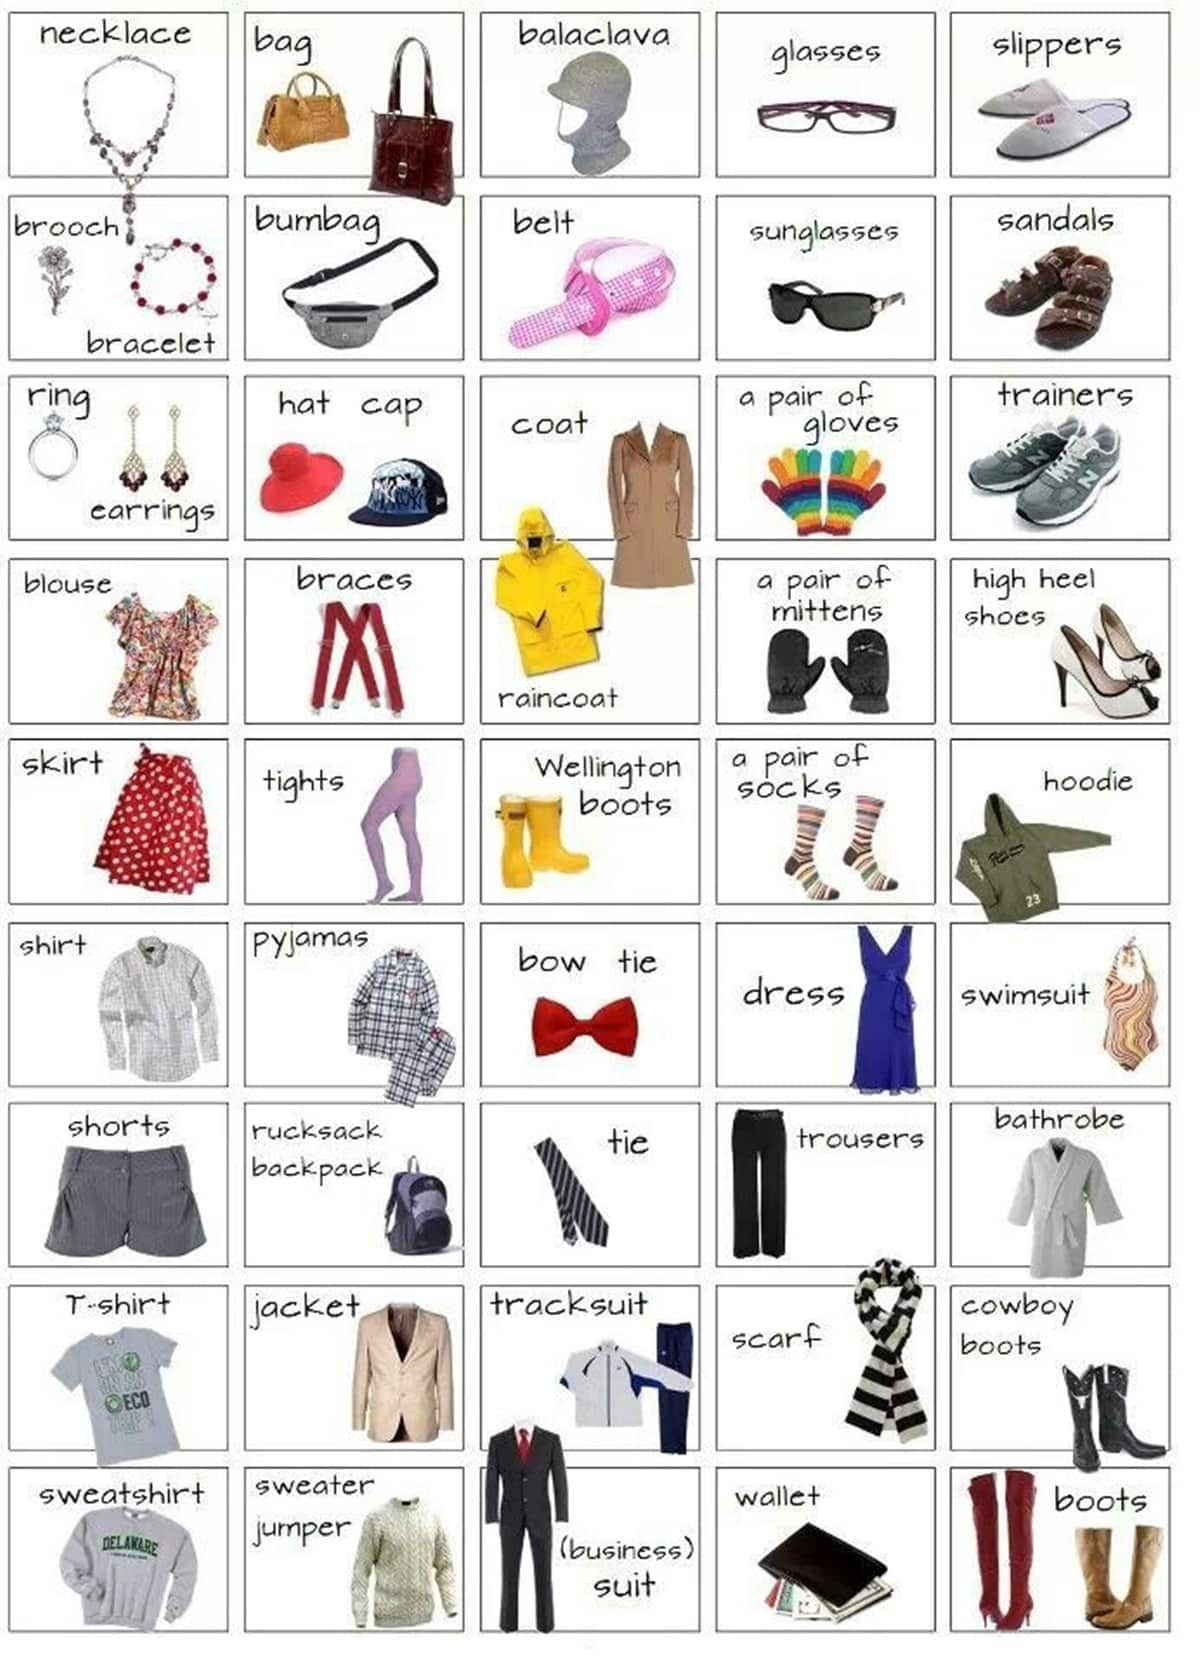 """Clothes and Fashion Accessories"" Vocabulary in English"